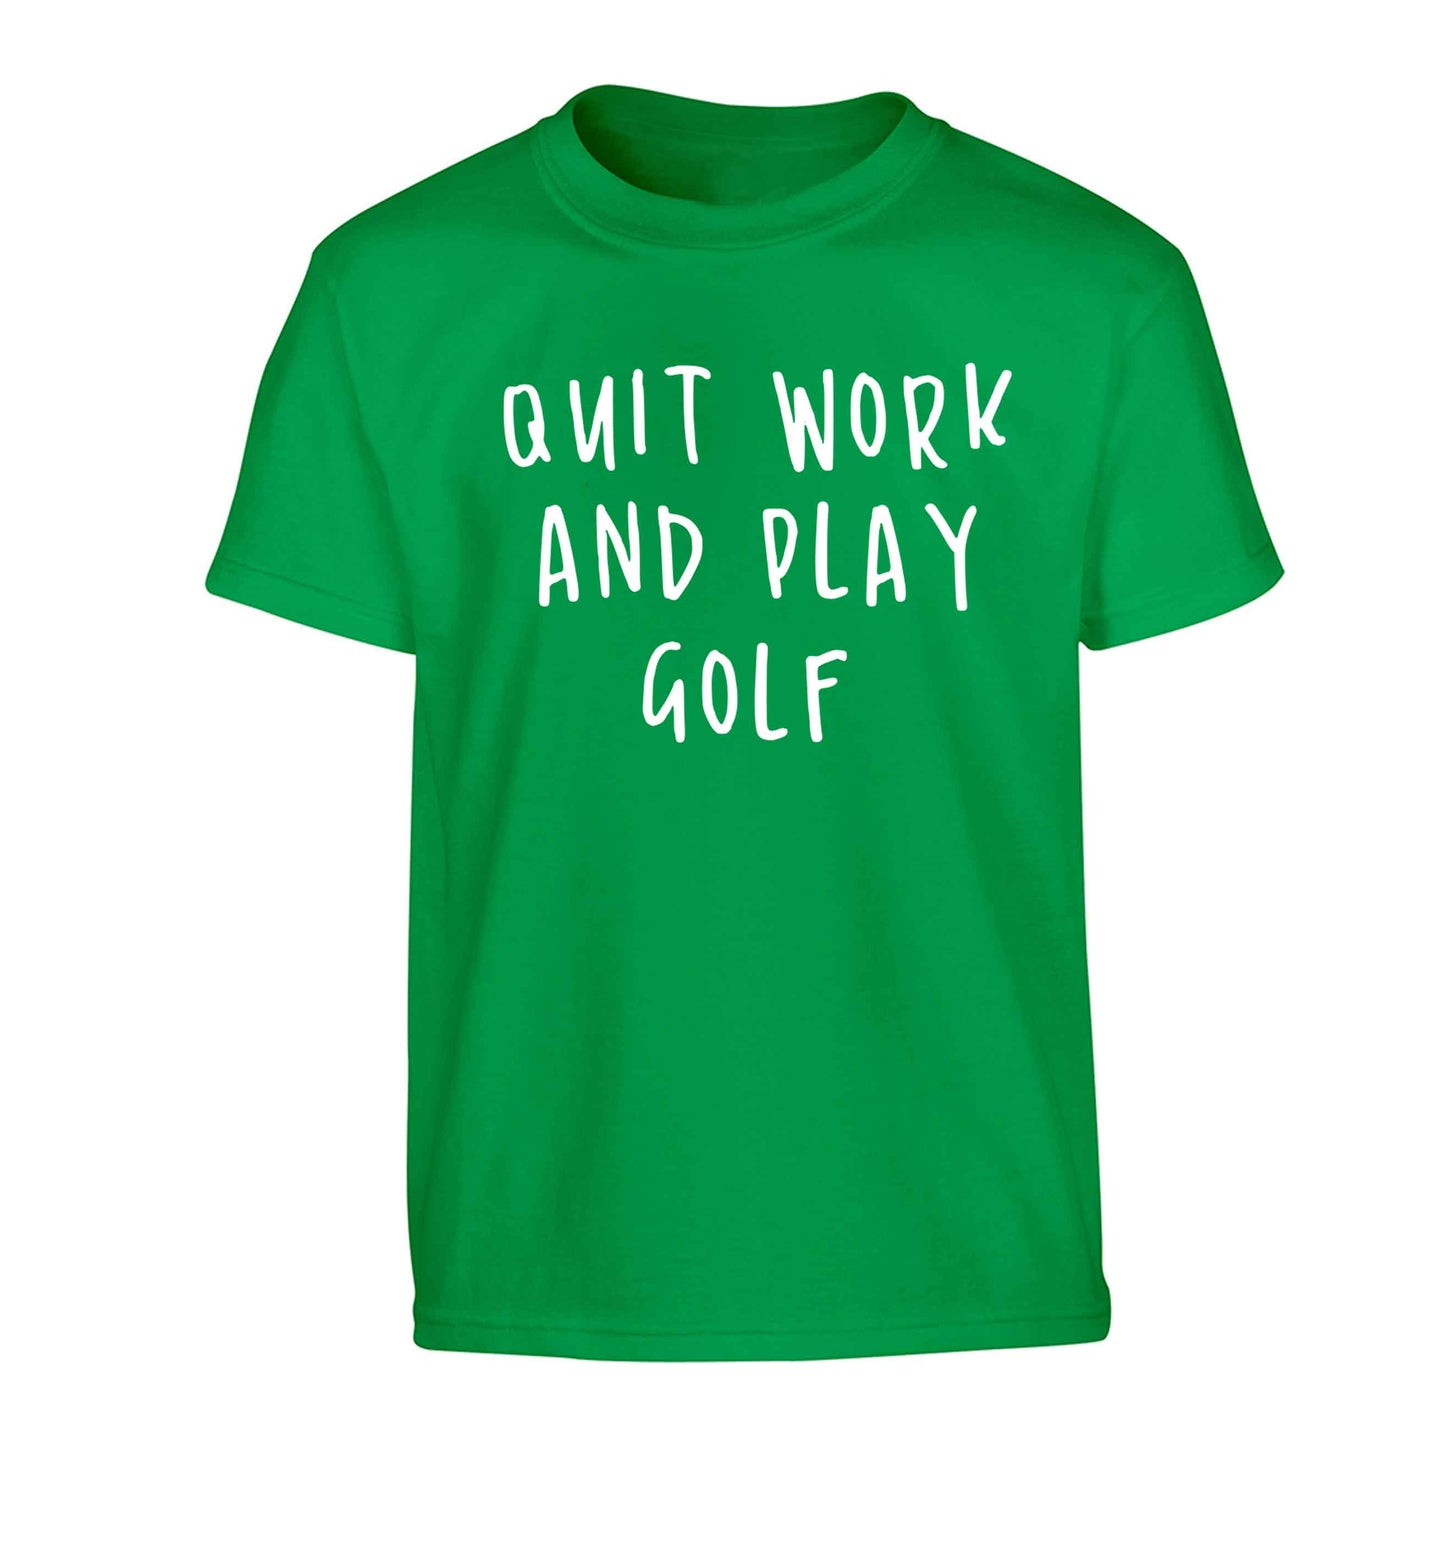 Quit work and play golf Children's green Tshirt 12-13 Years